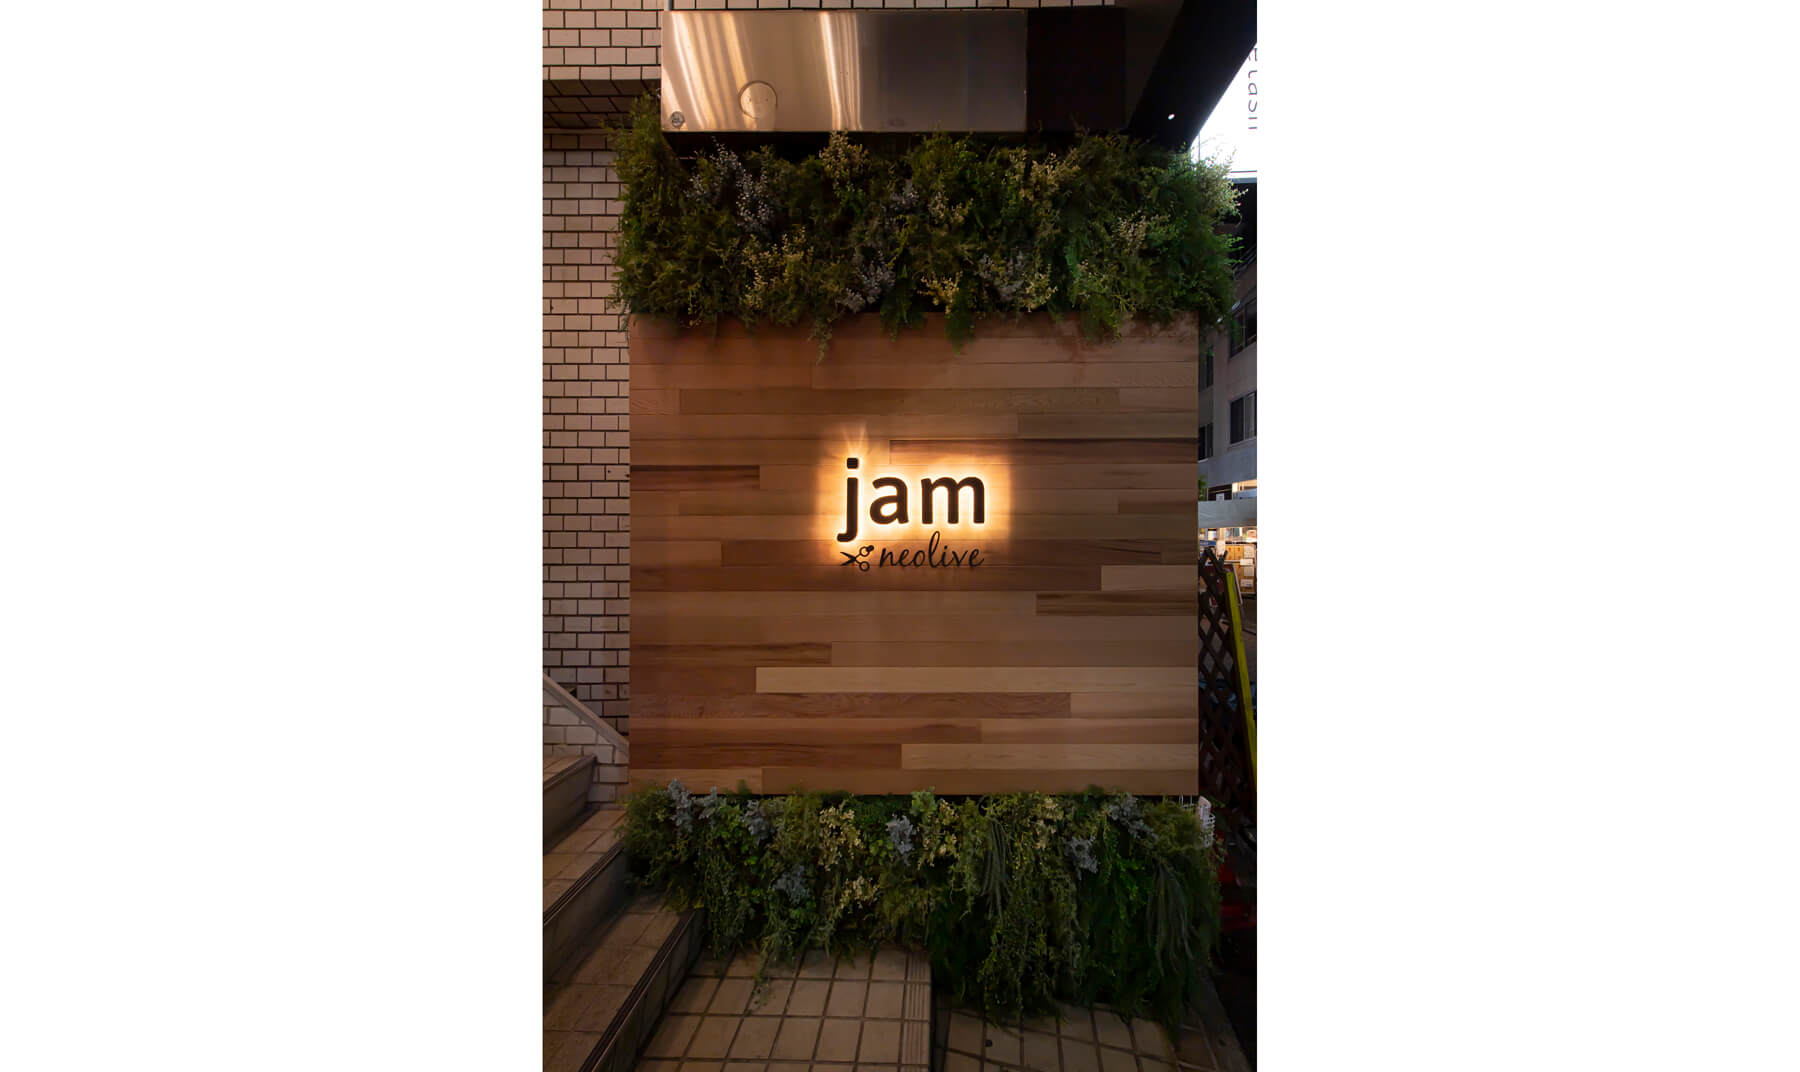 jam by Neolive高円寺店/Tokyo